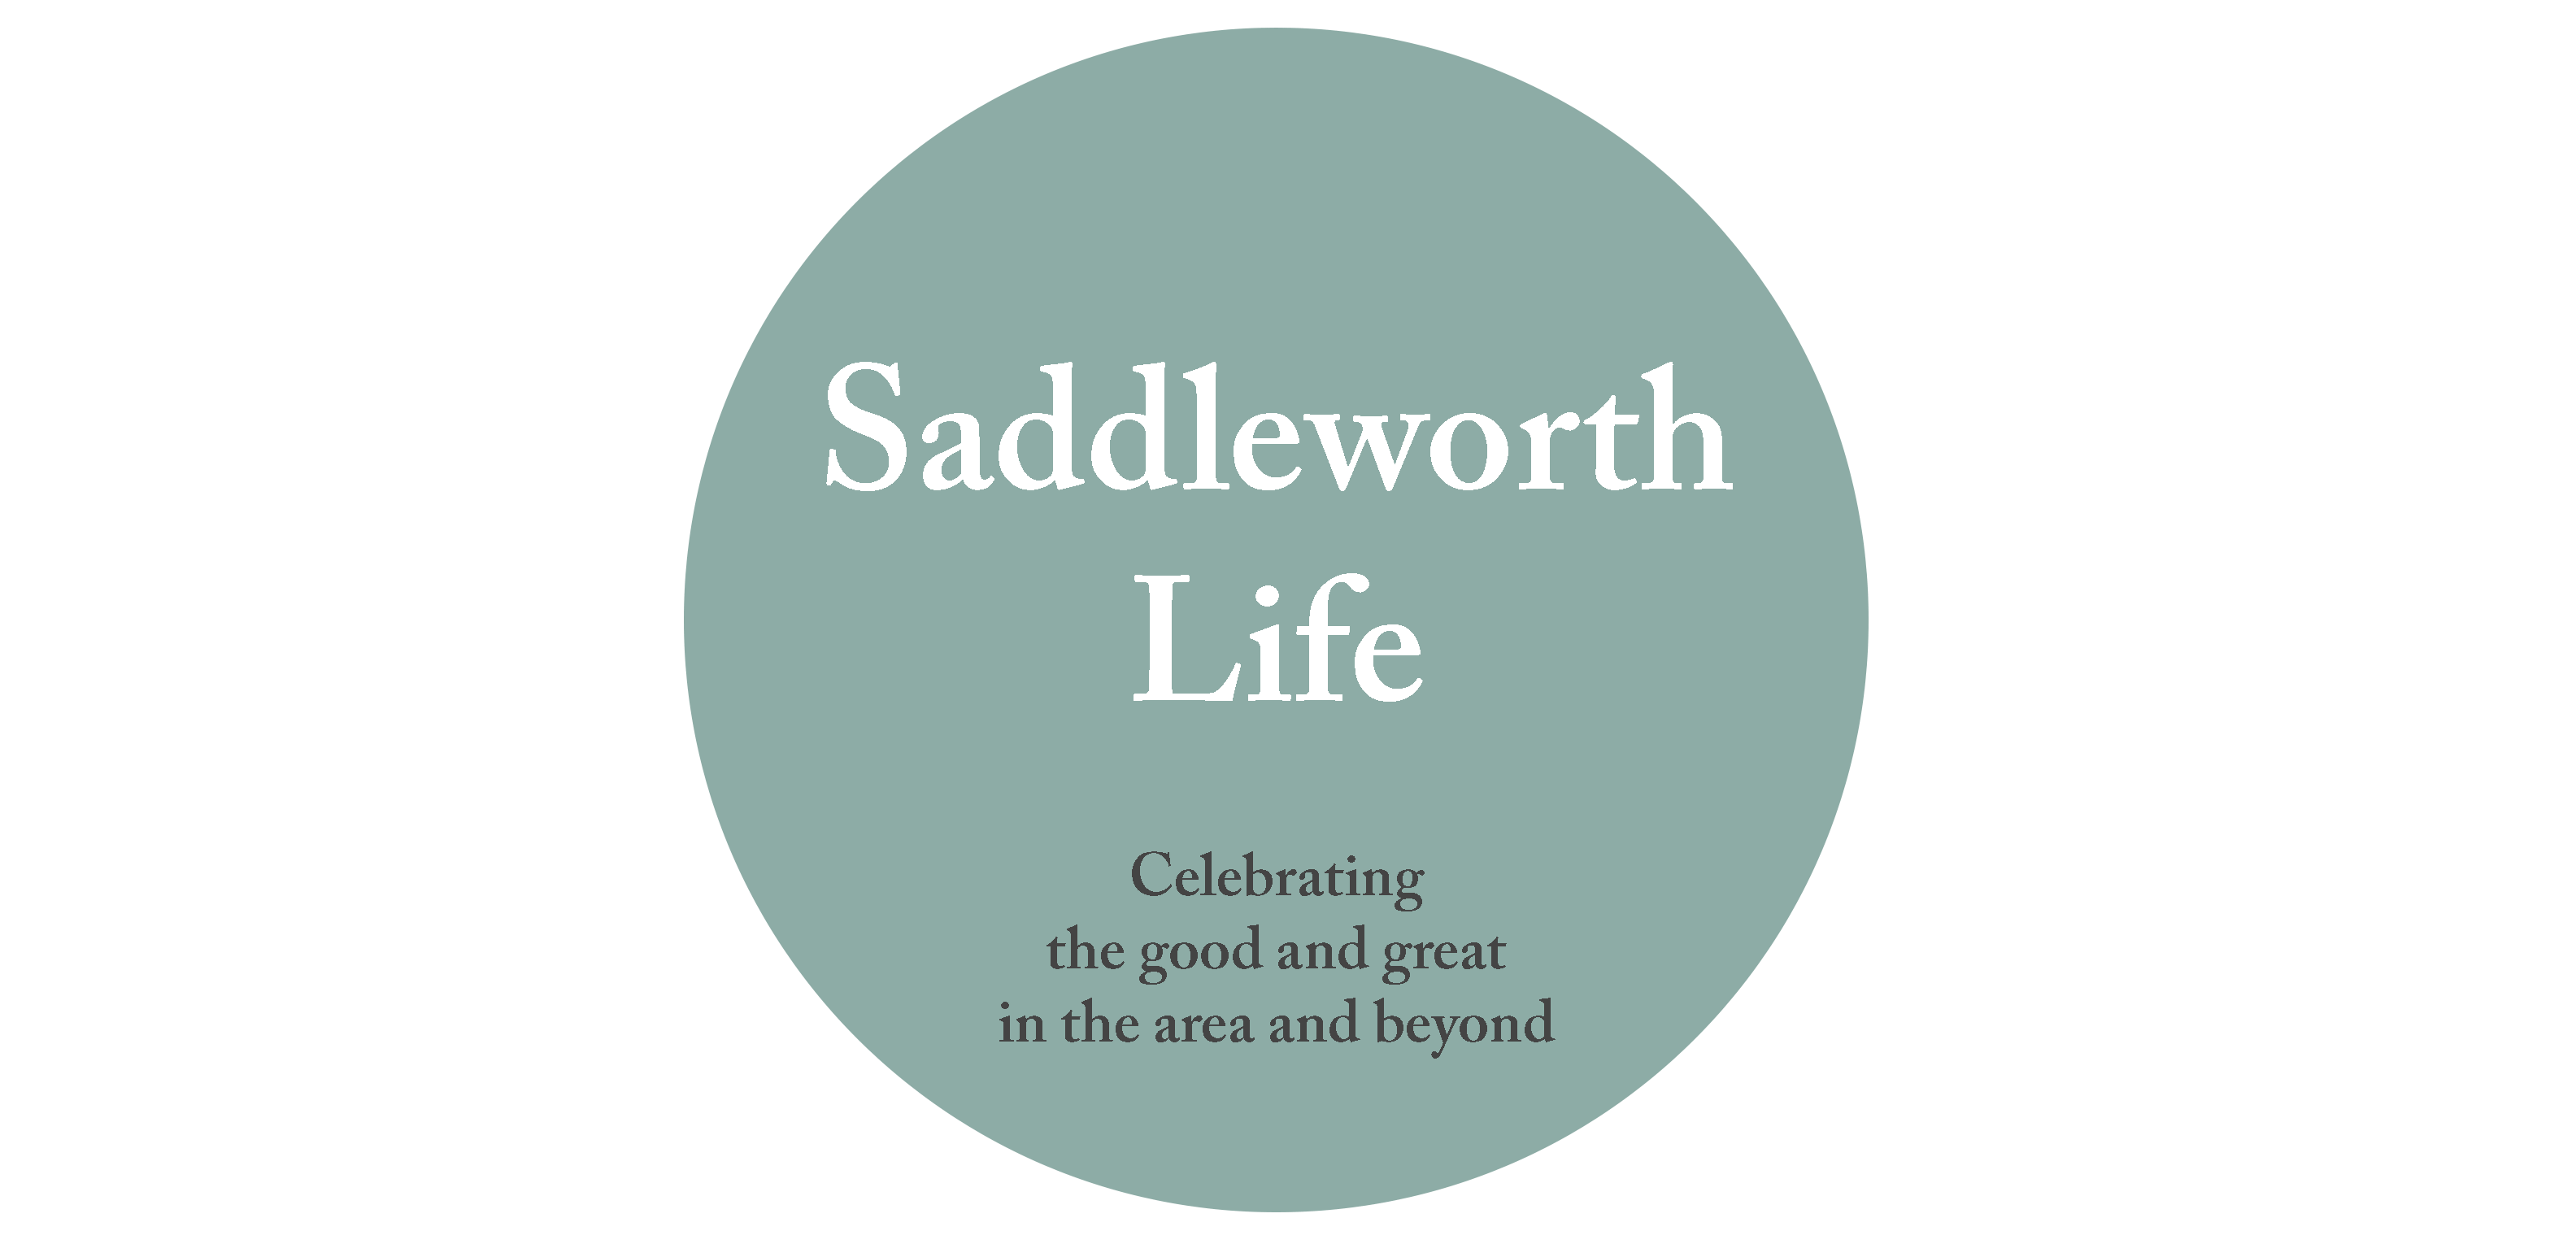 SADDLEWORTH LIFE